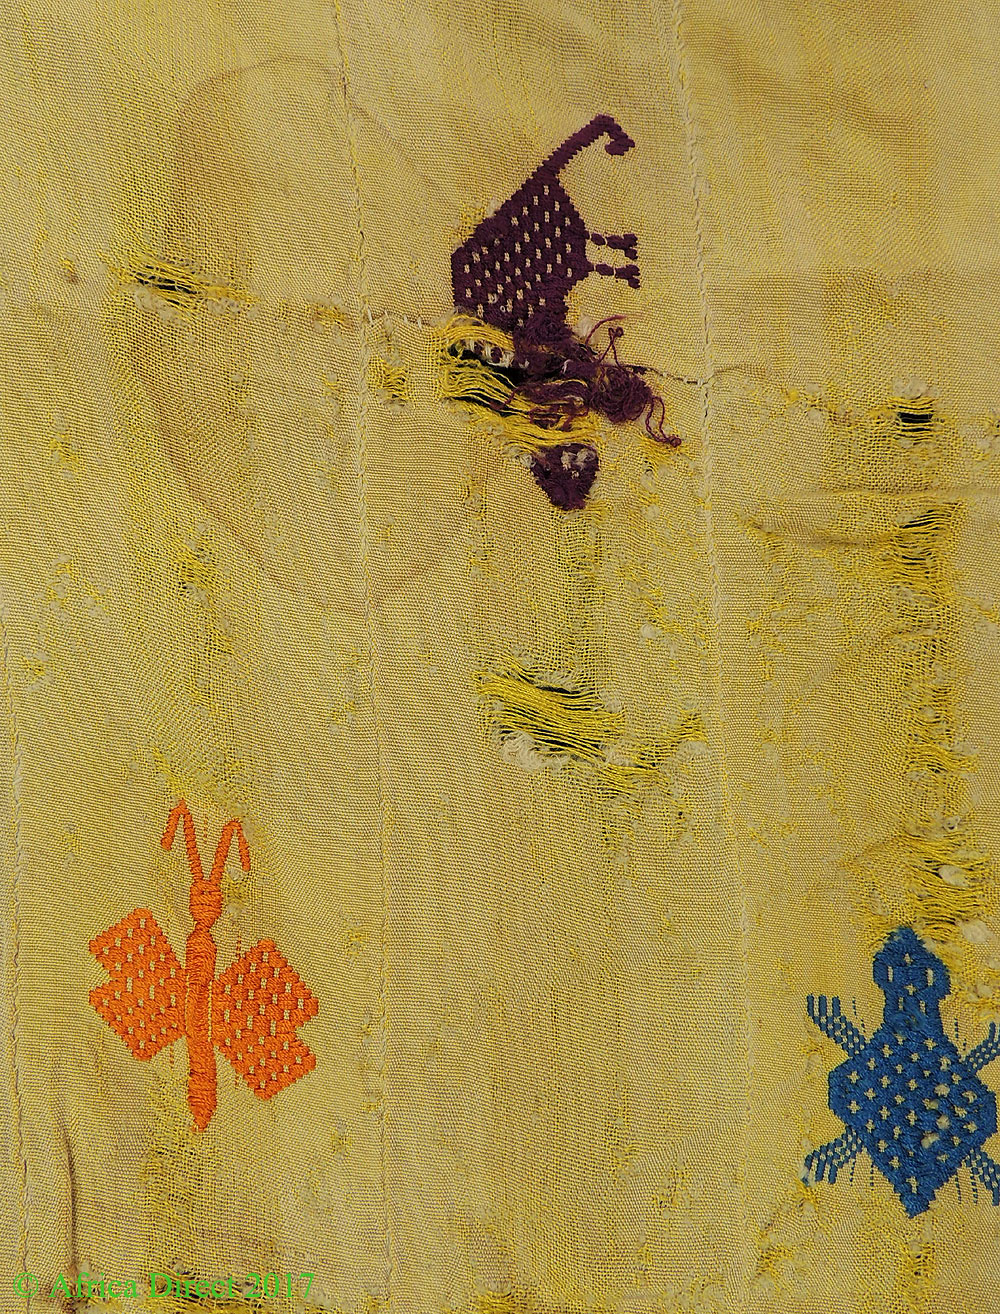 Ewe Silk Cloth Yellow Textile Embroidered Symbols Togo African Art ...